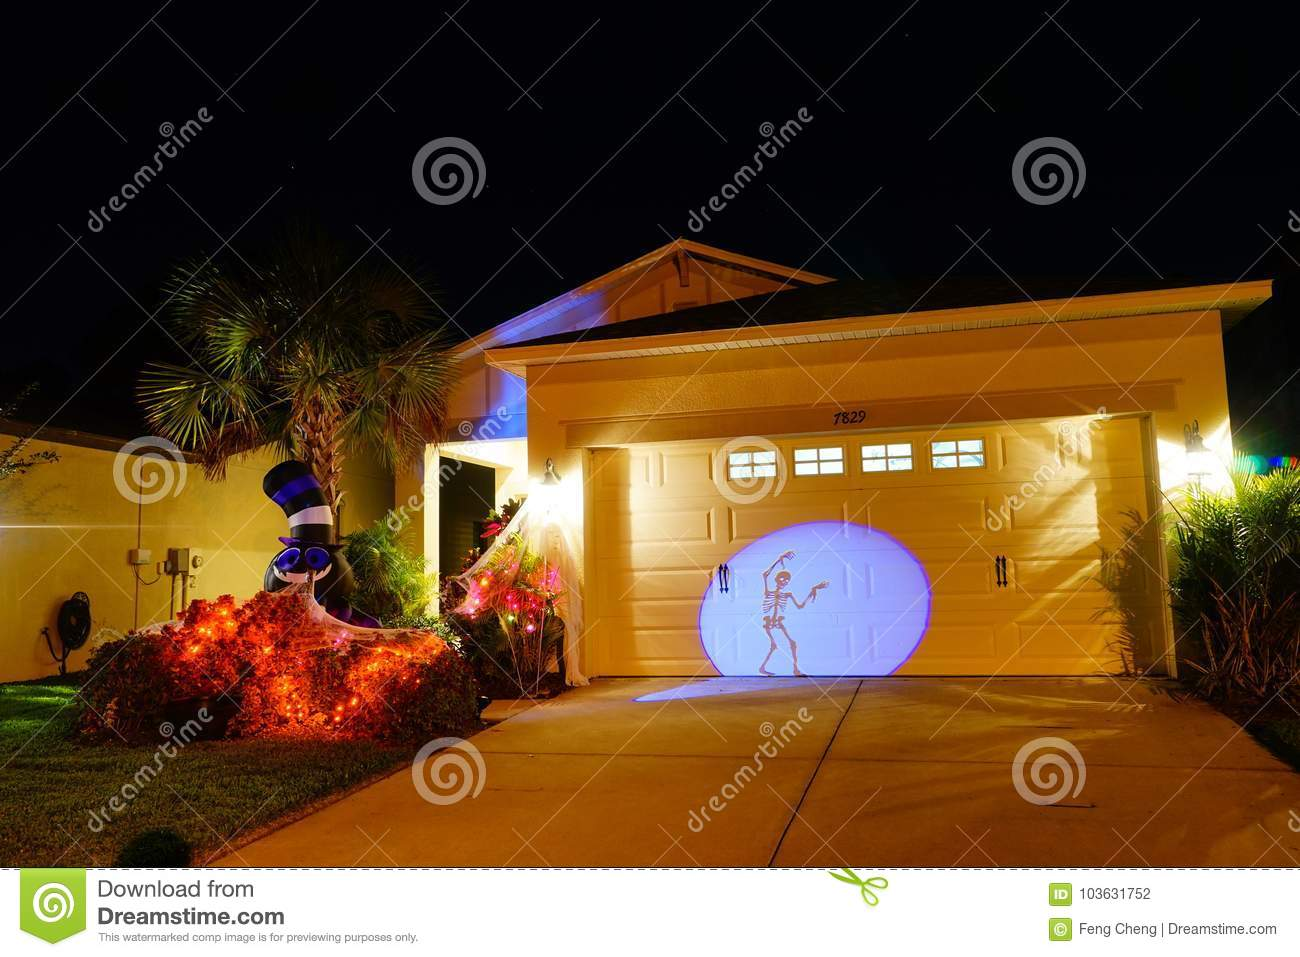 Halloween Decoration In A Home Stock Photo , Image of